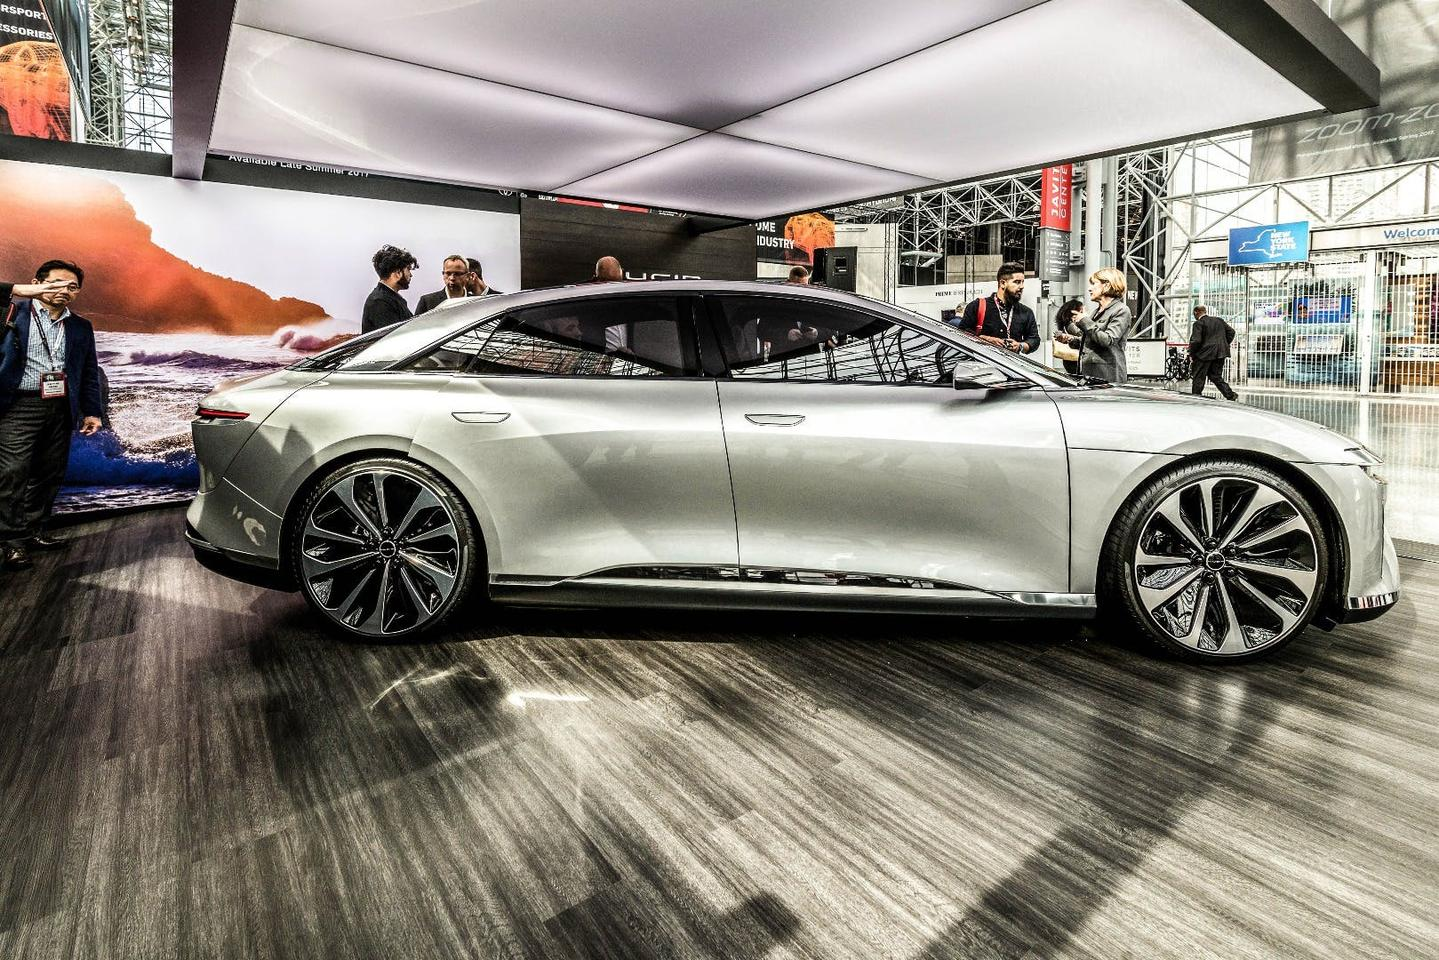 The Lucid Air on show at the New YorkAuto Show